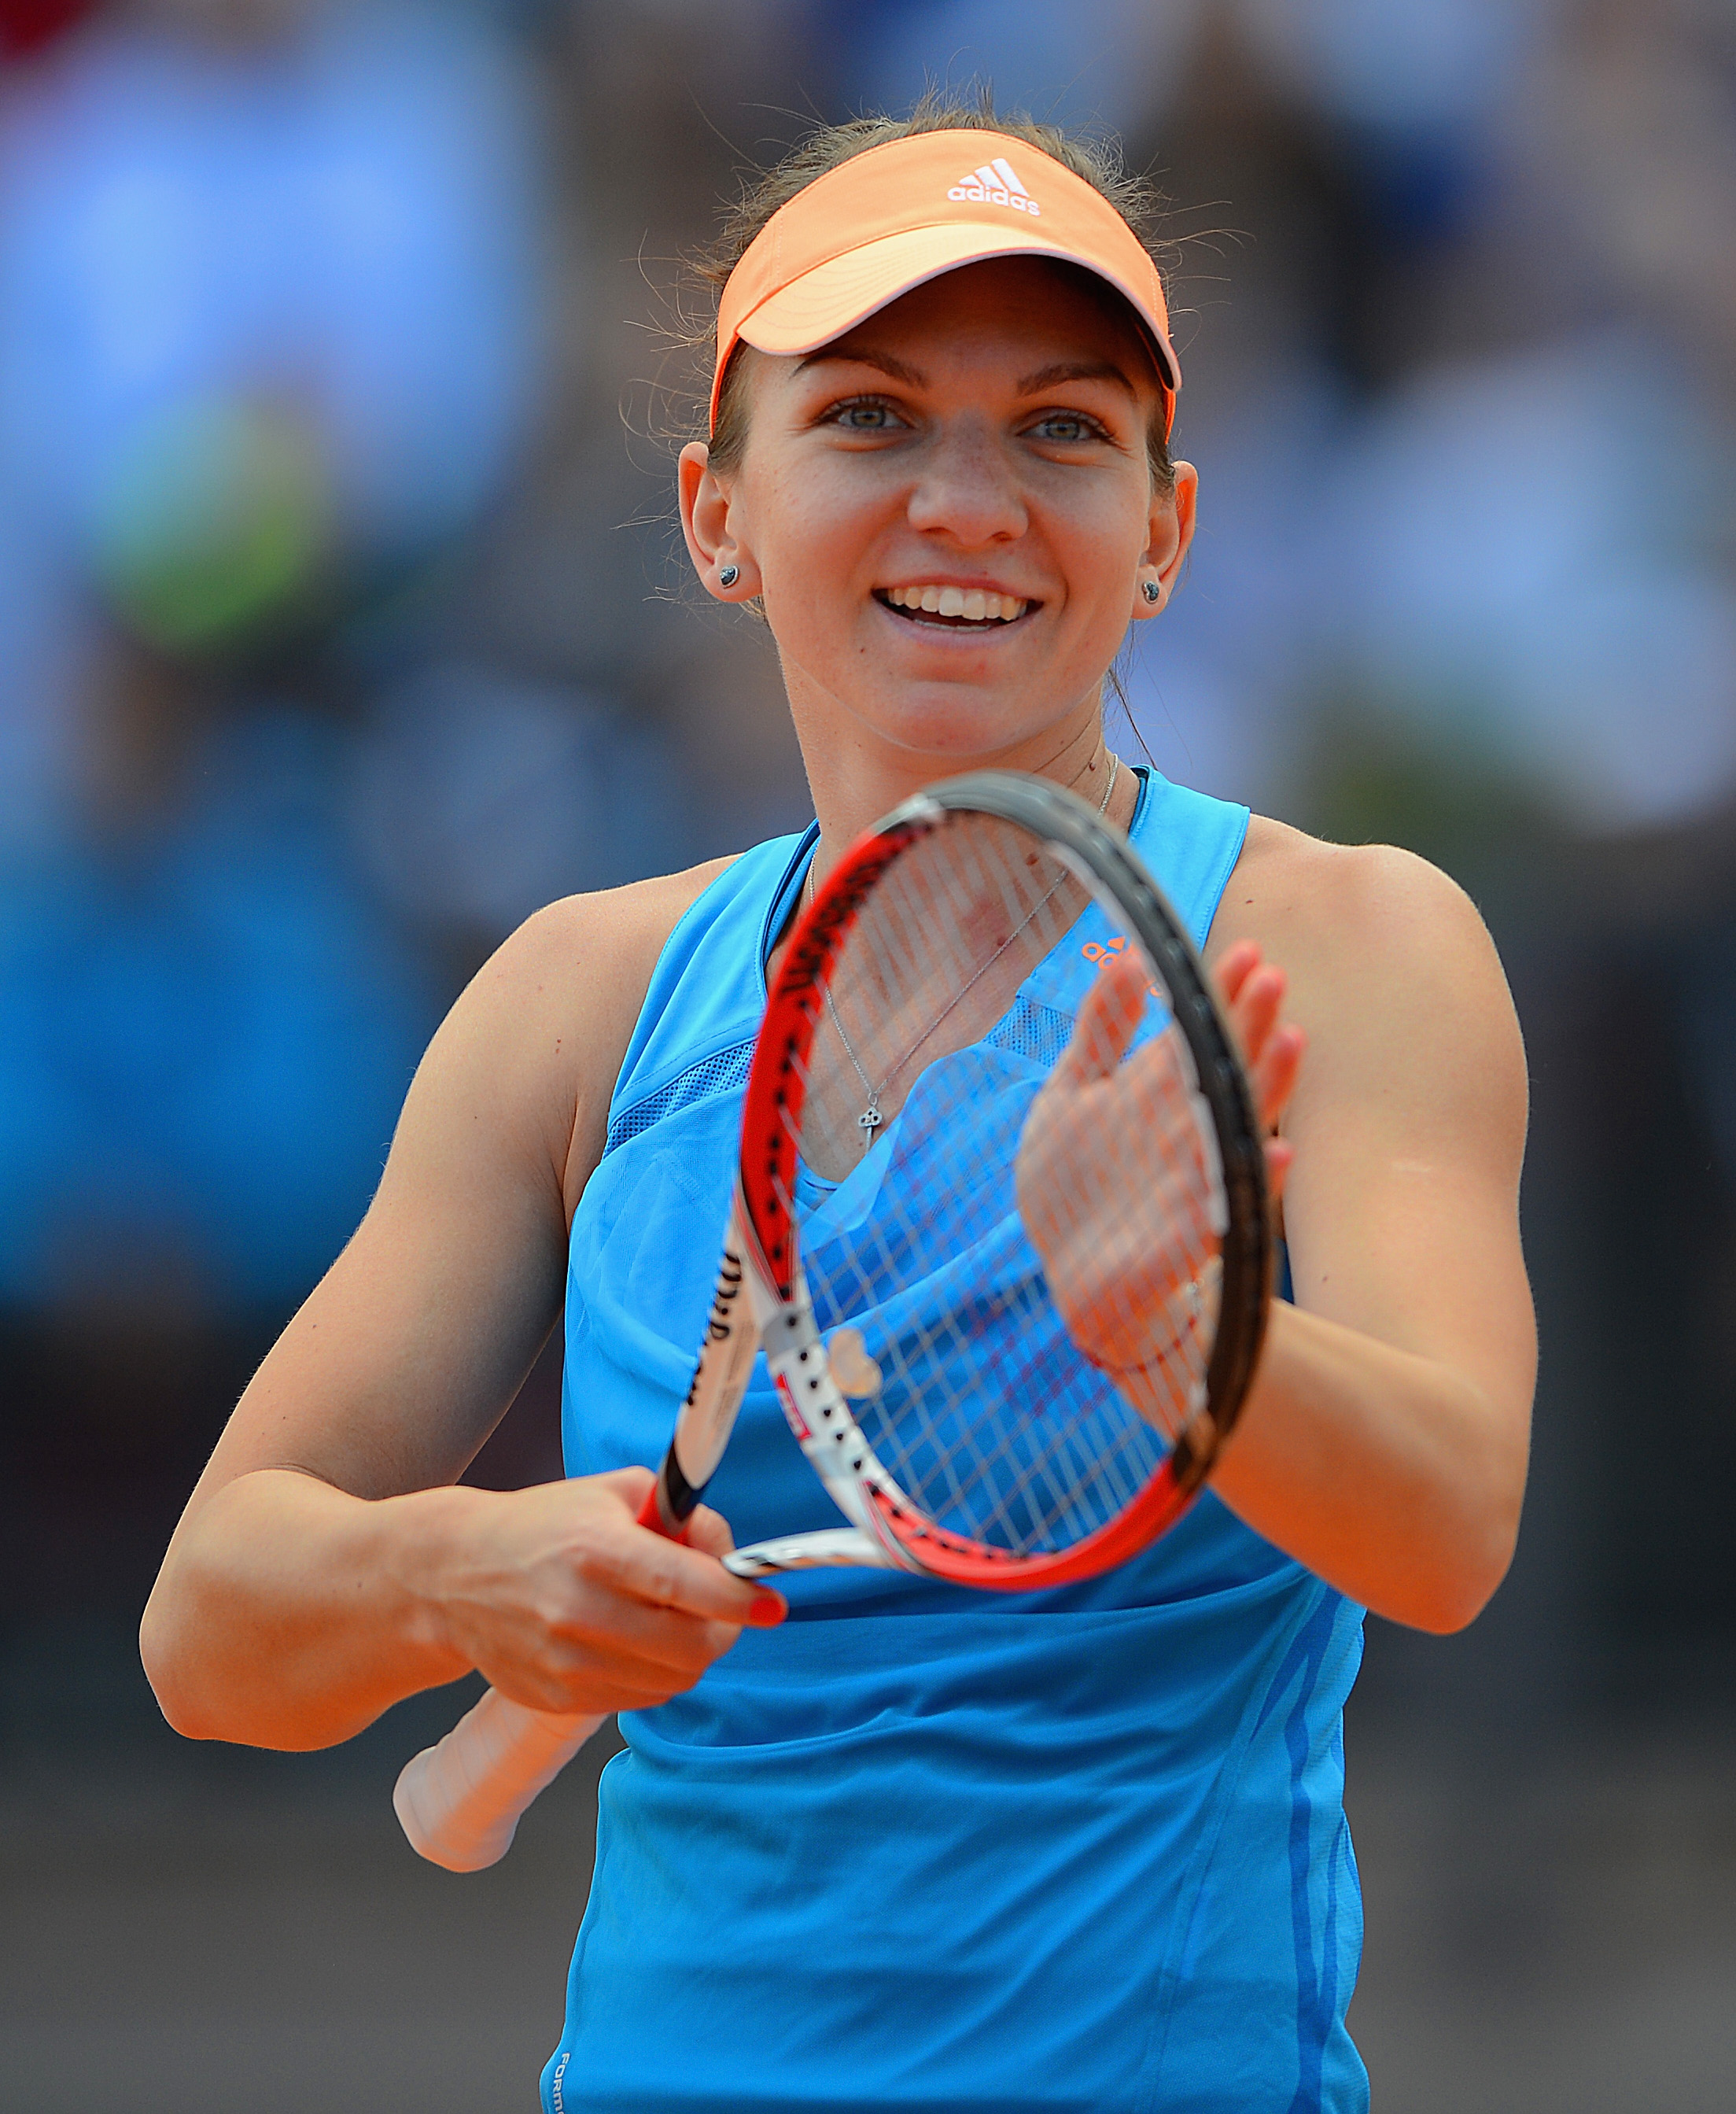 Simona Halep Plastic Surgery Before And After Breast Reduction Photos